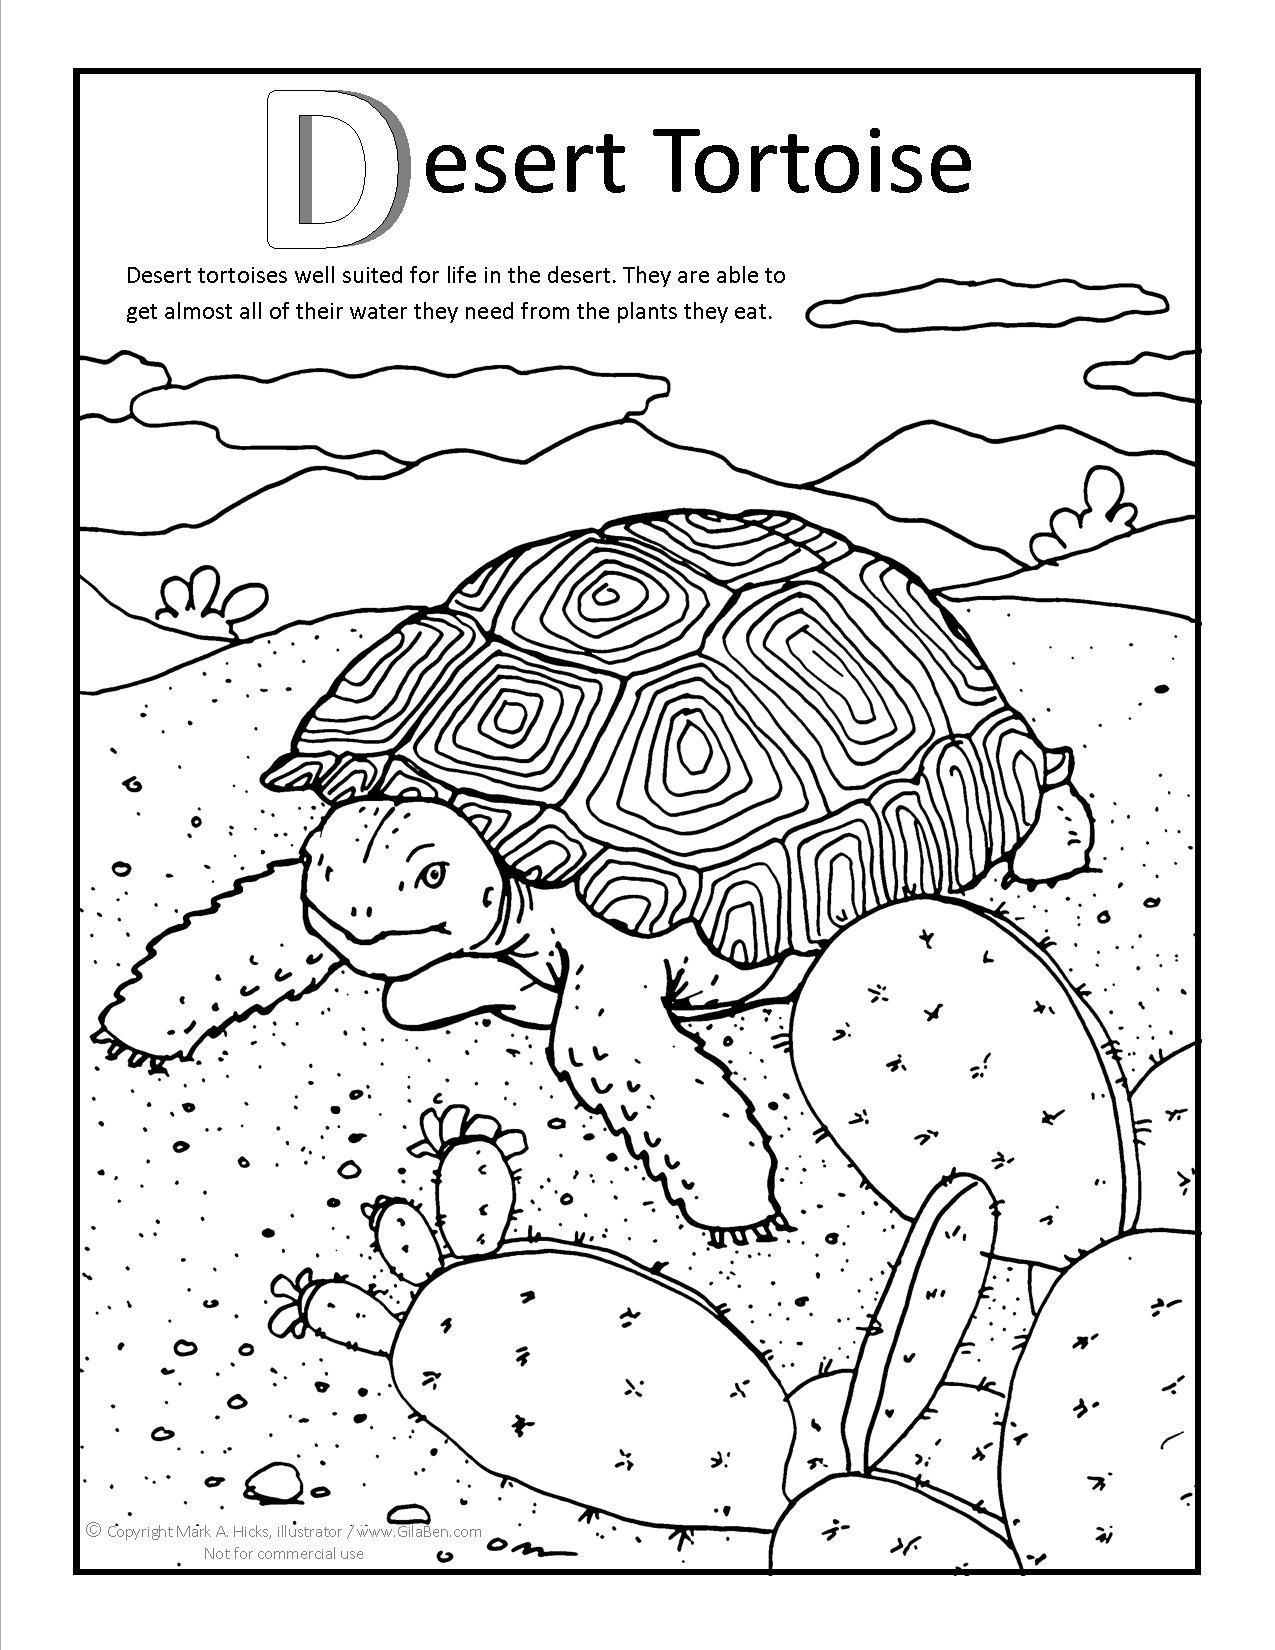 Desert Tortoise Coloring Page At Gilaben Com Tortoise Care